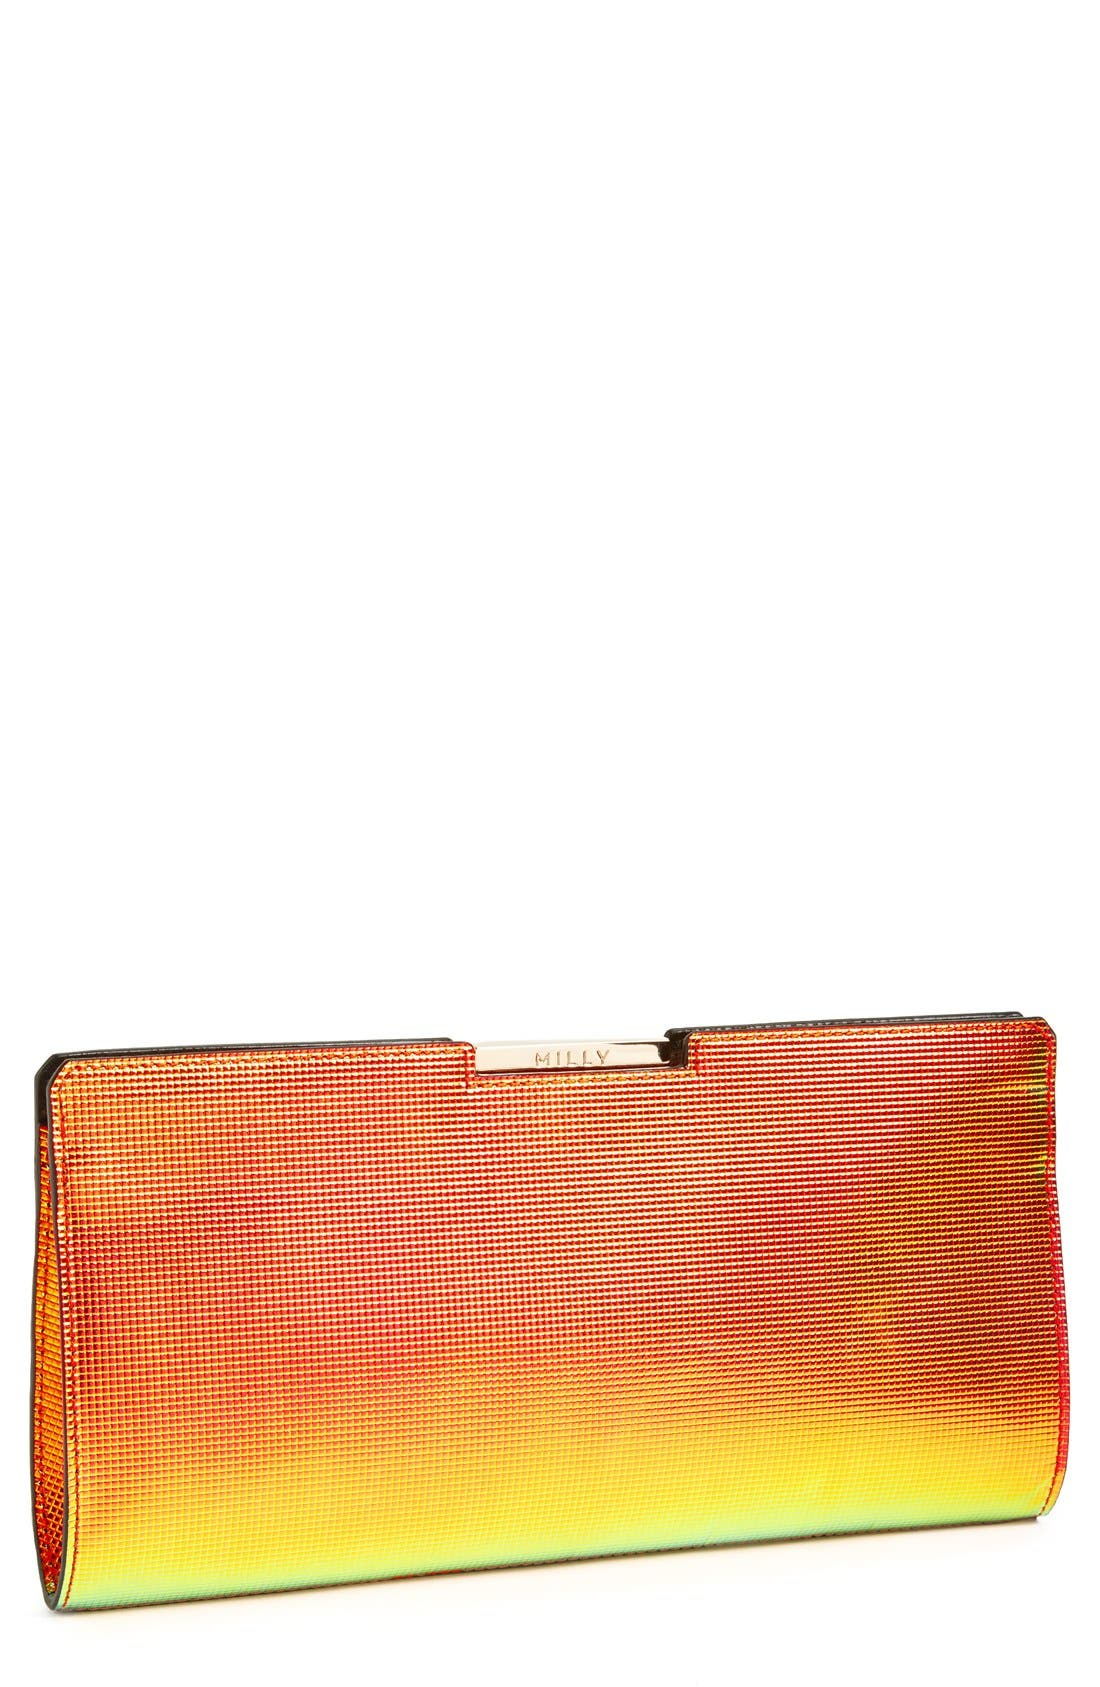 Alternate Image 1 Selected - Milly 'Crosby' Iridescent Frame Clutch